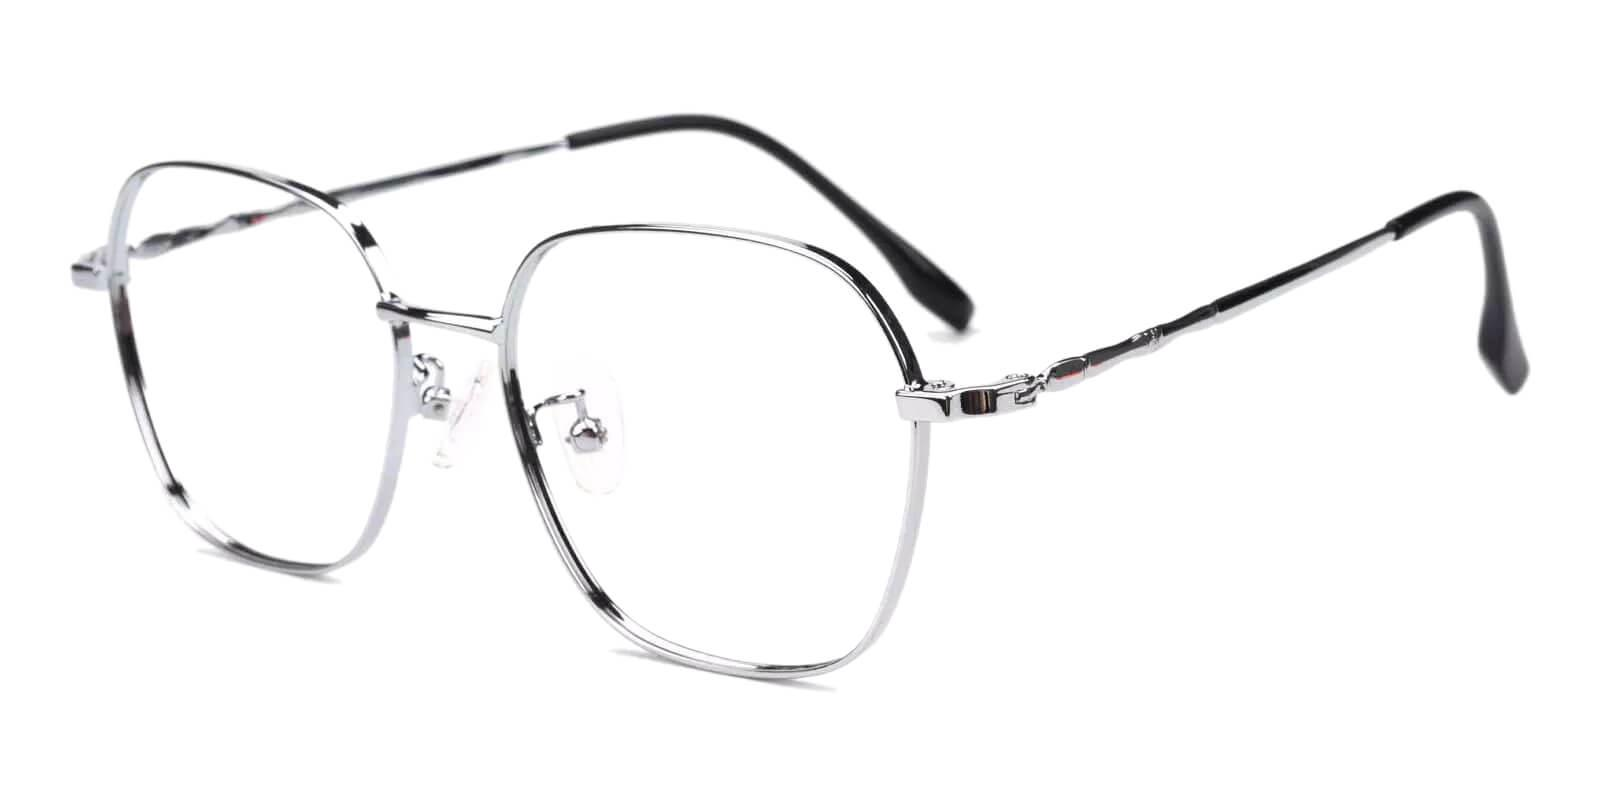 Ruff Silver Metal Eyeglasses , Fashion , NosePads Frames from ABBE Glasses